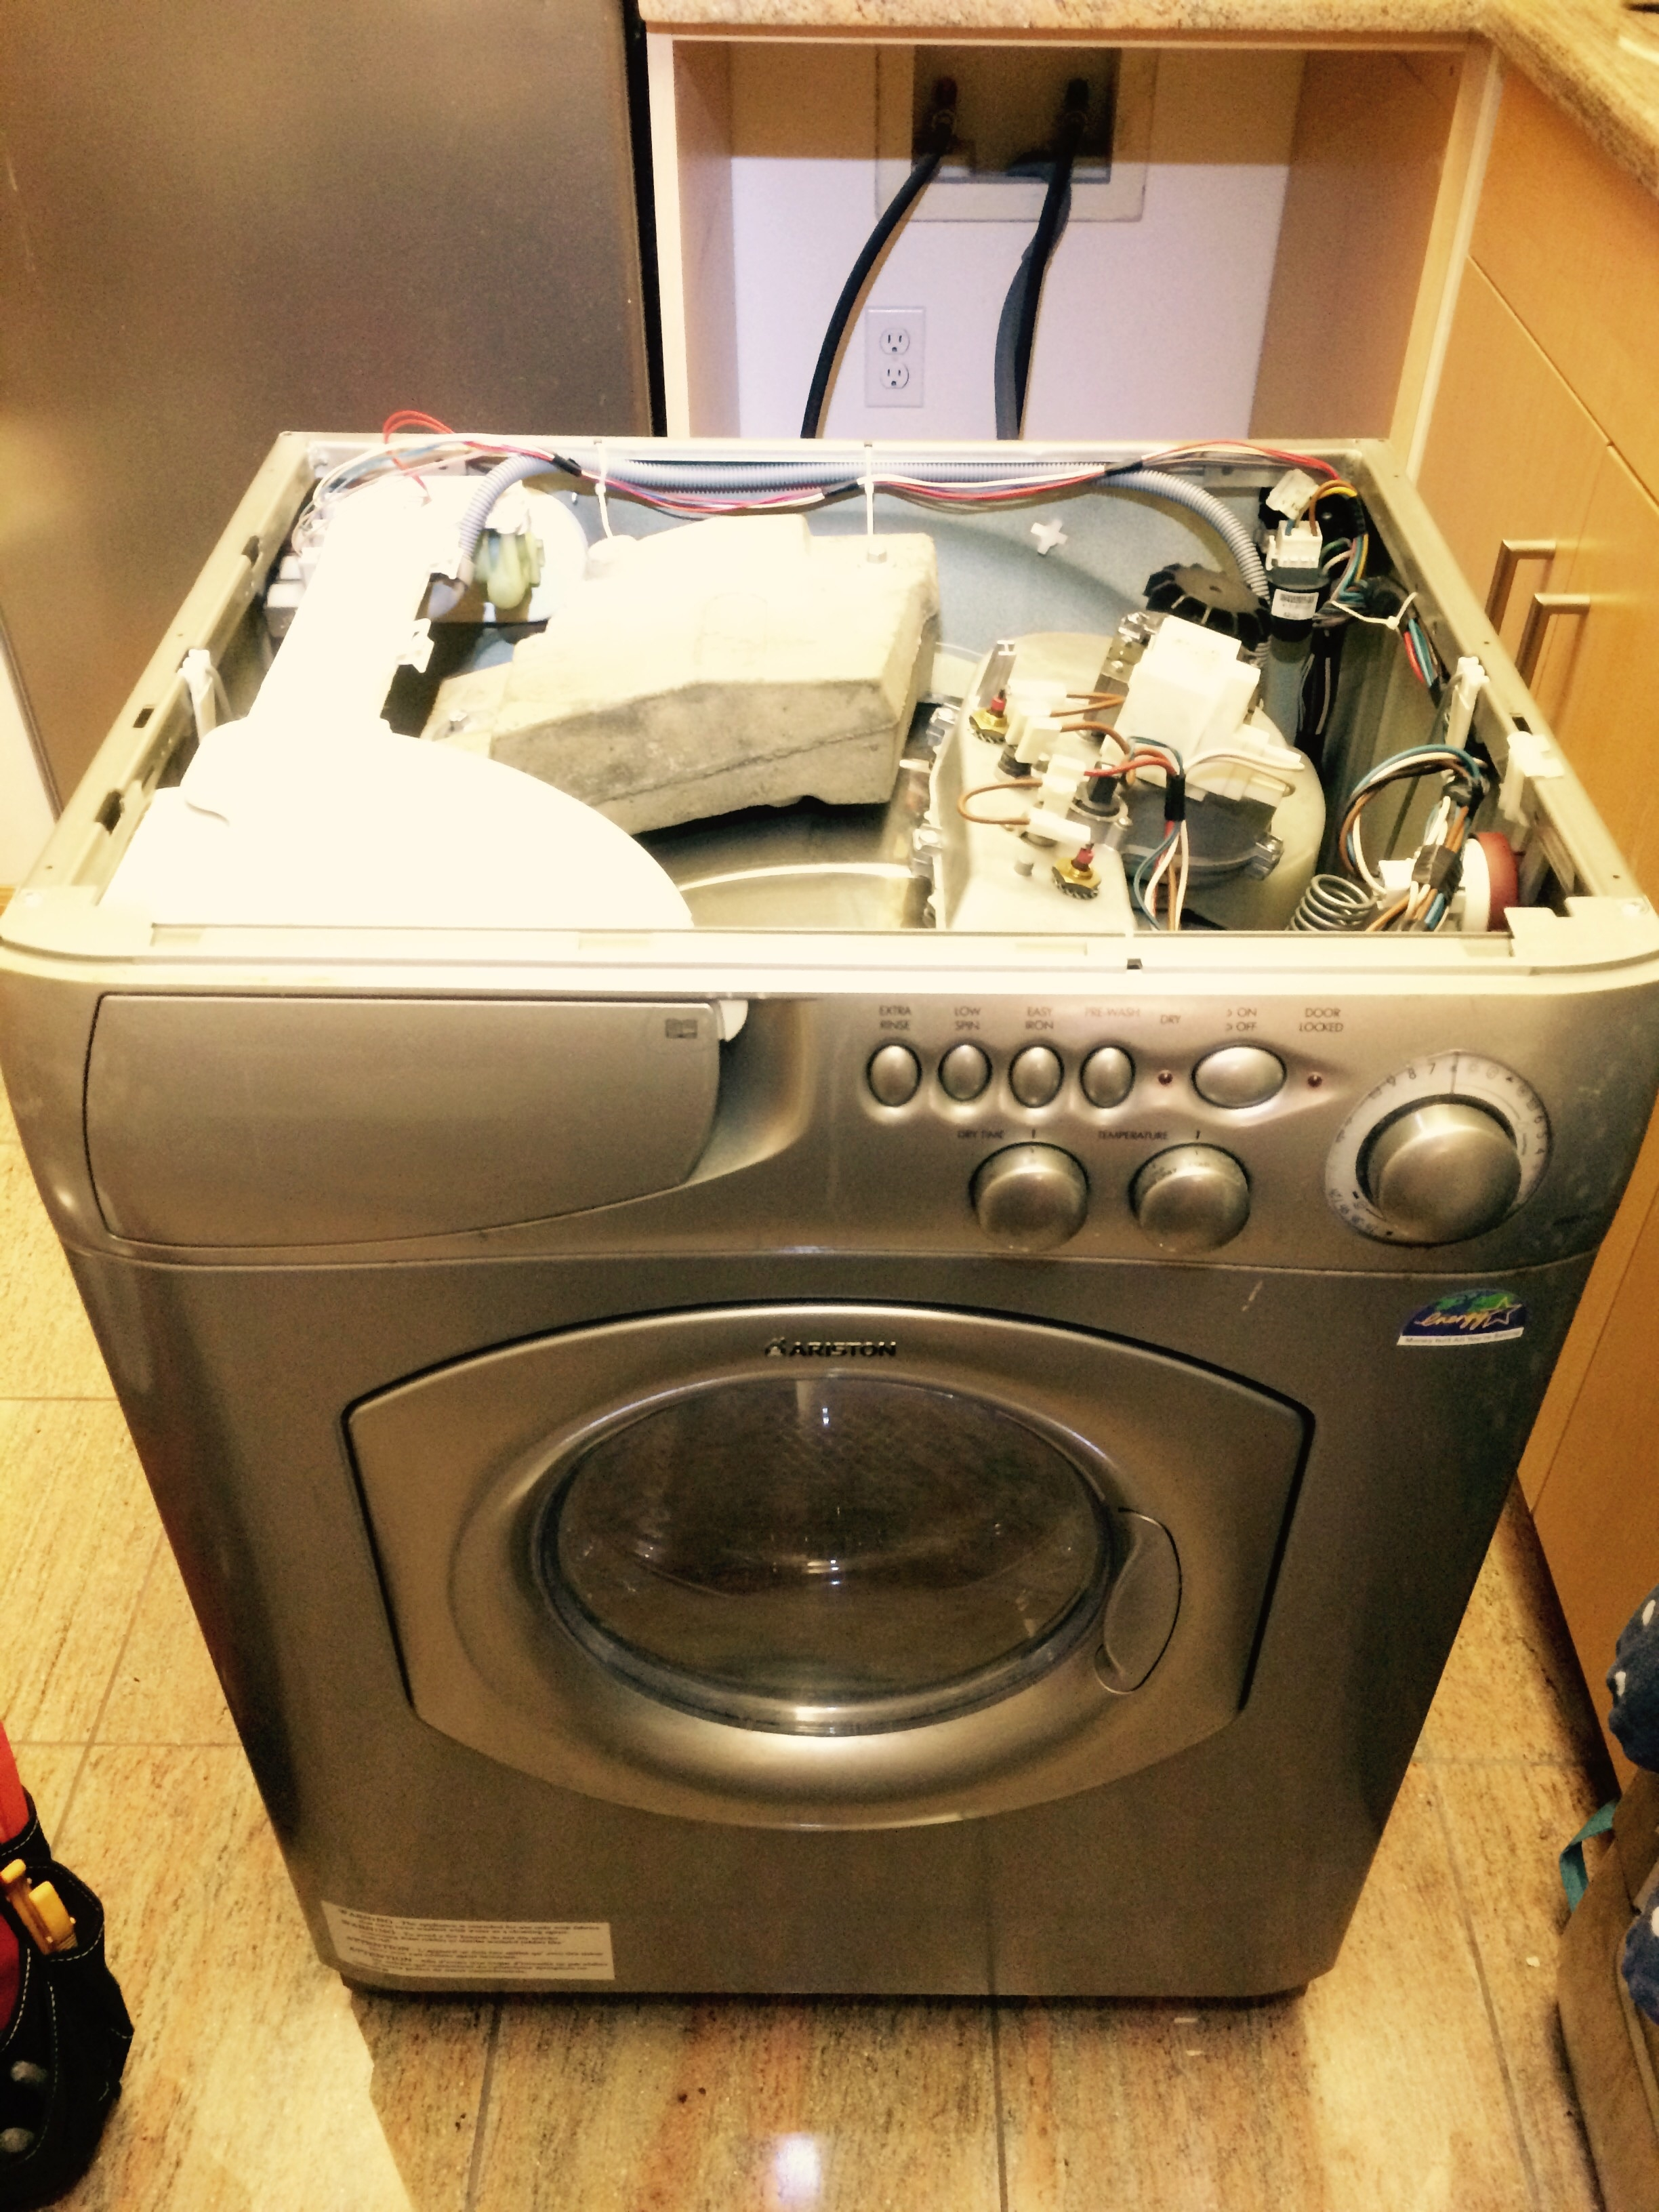 Global Solutions Appliance Repair image 54